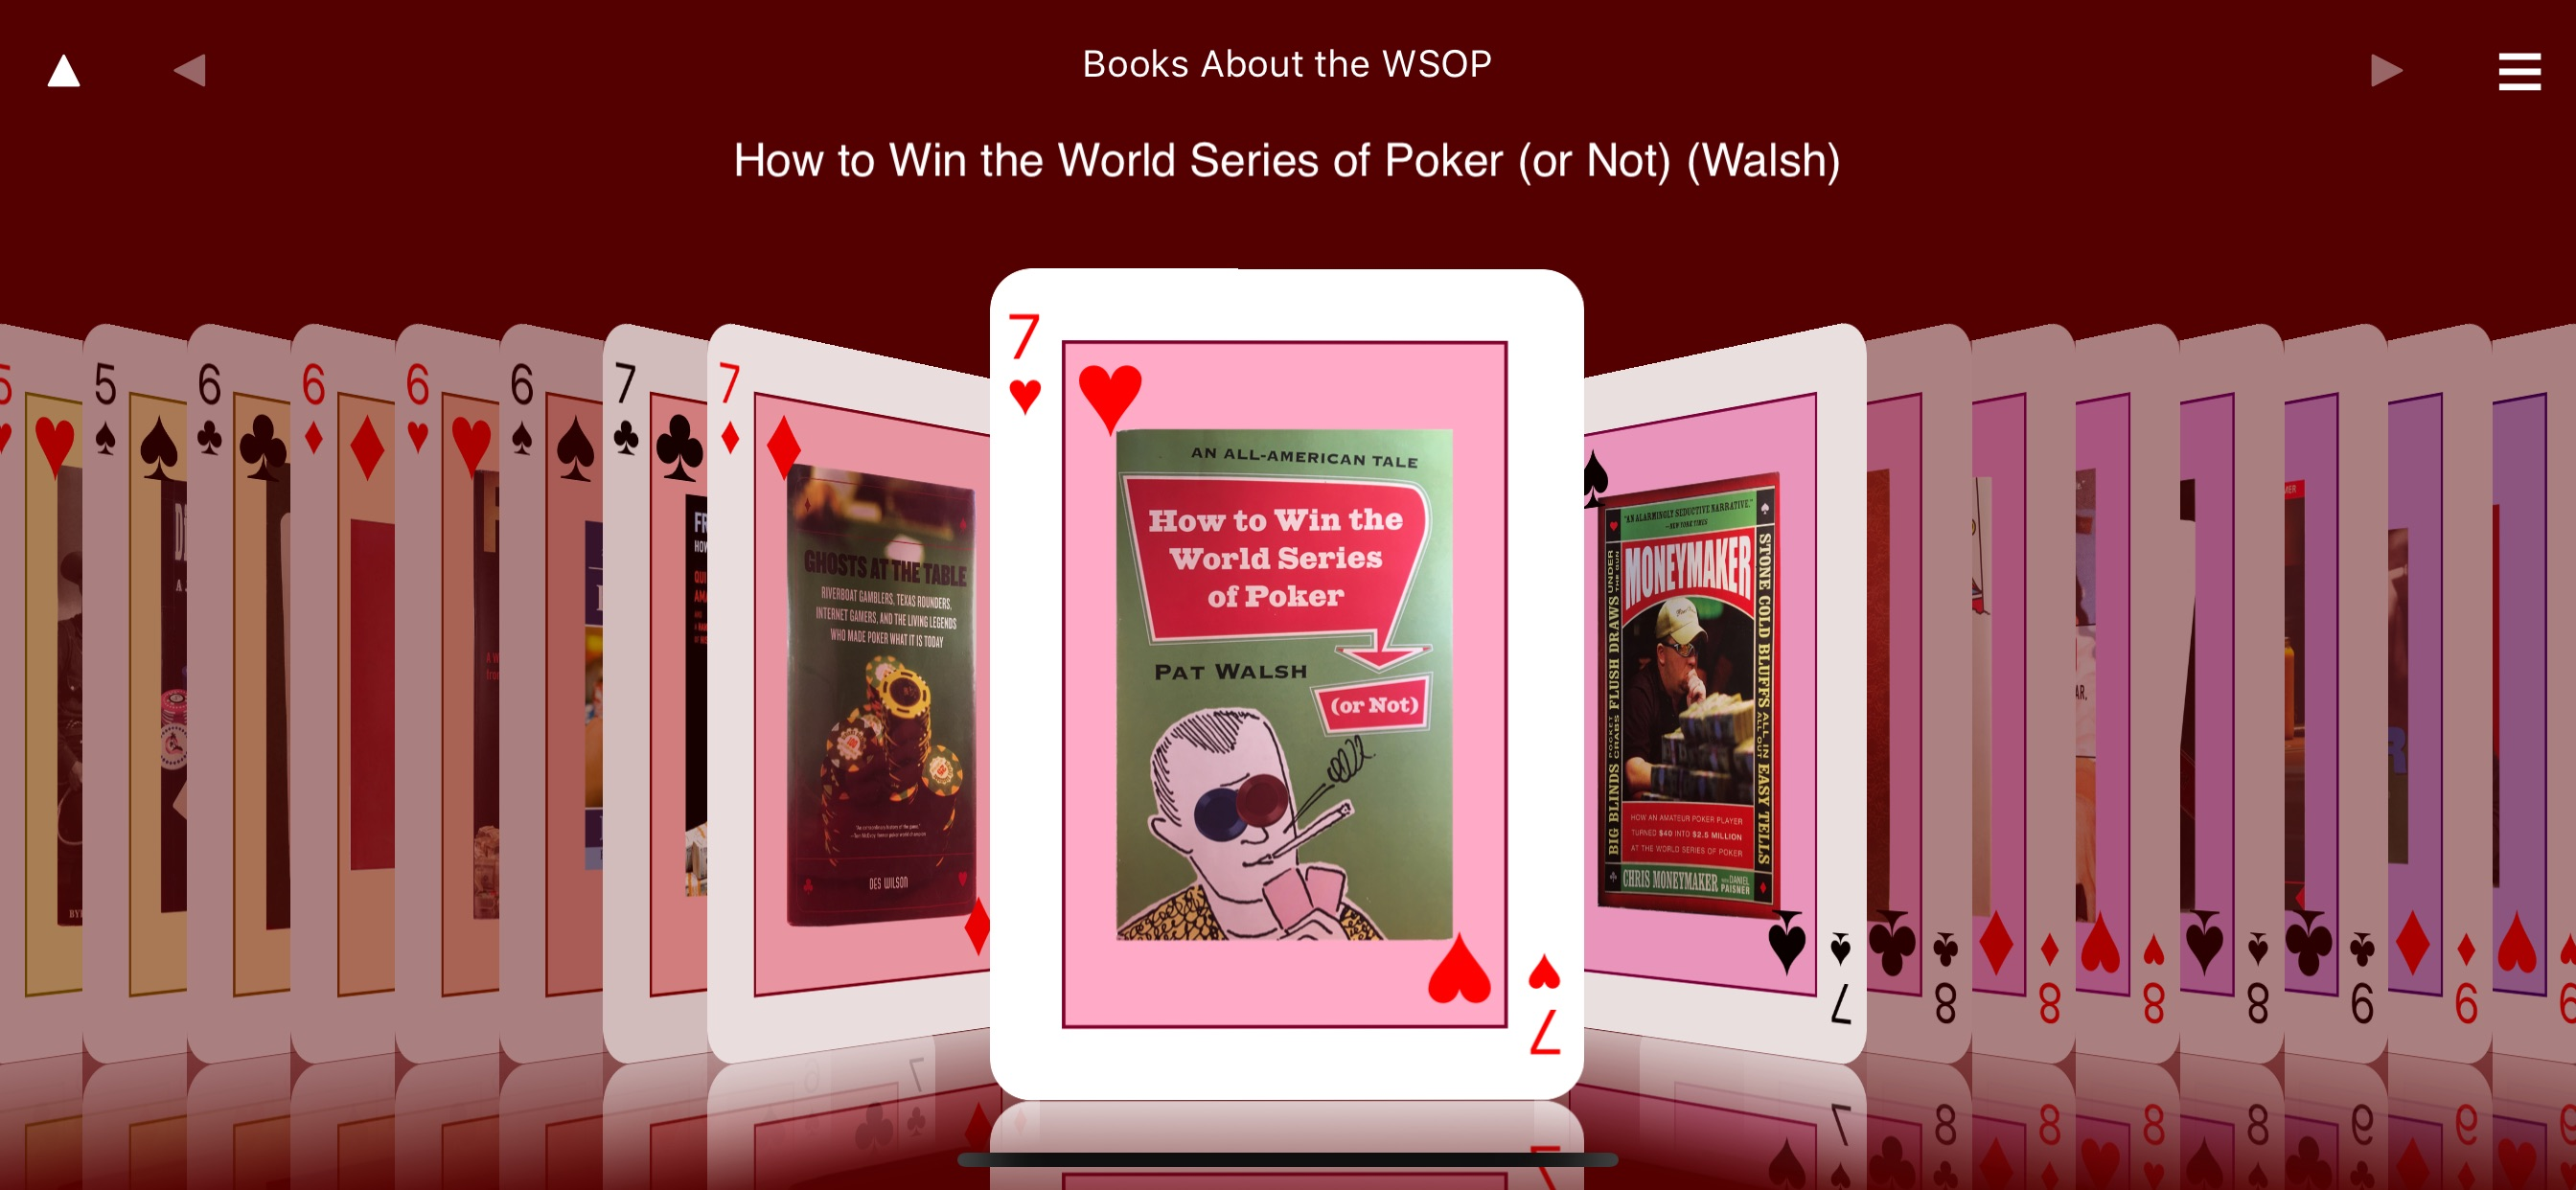 Poker Omnibus W50P Celebrates 50 Years of World Series of Poker History Image